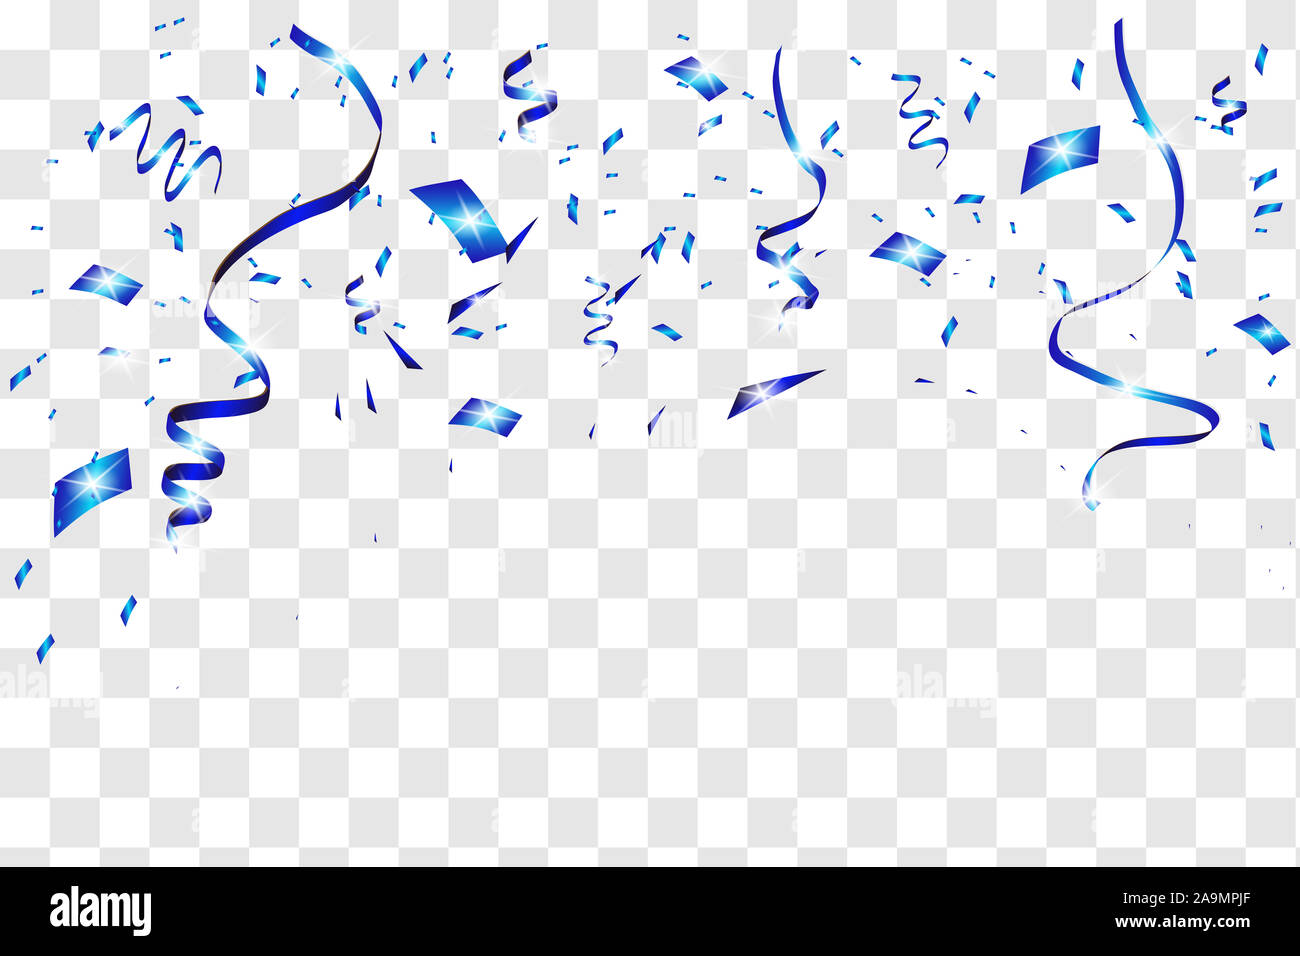 Confetti Transparent Background : Here you can explore hq confetti transparent illustrations, icons and clipart with filter setting like polish your personal project or design with these confetti transparent png images, make it even.